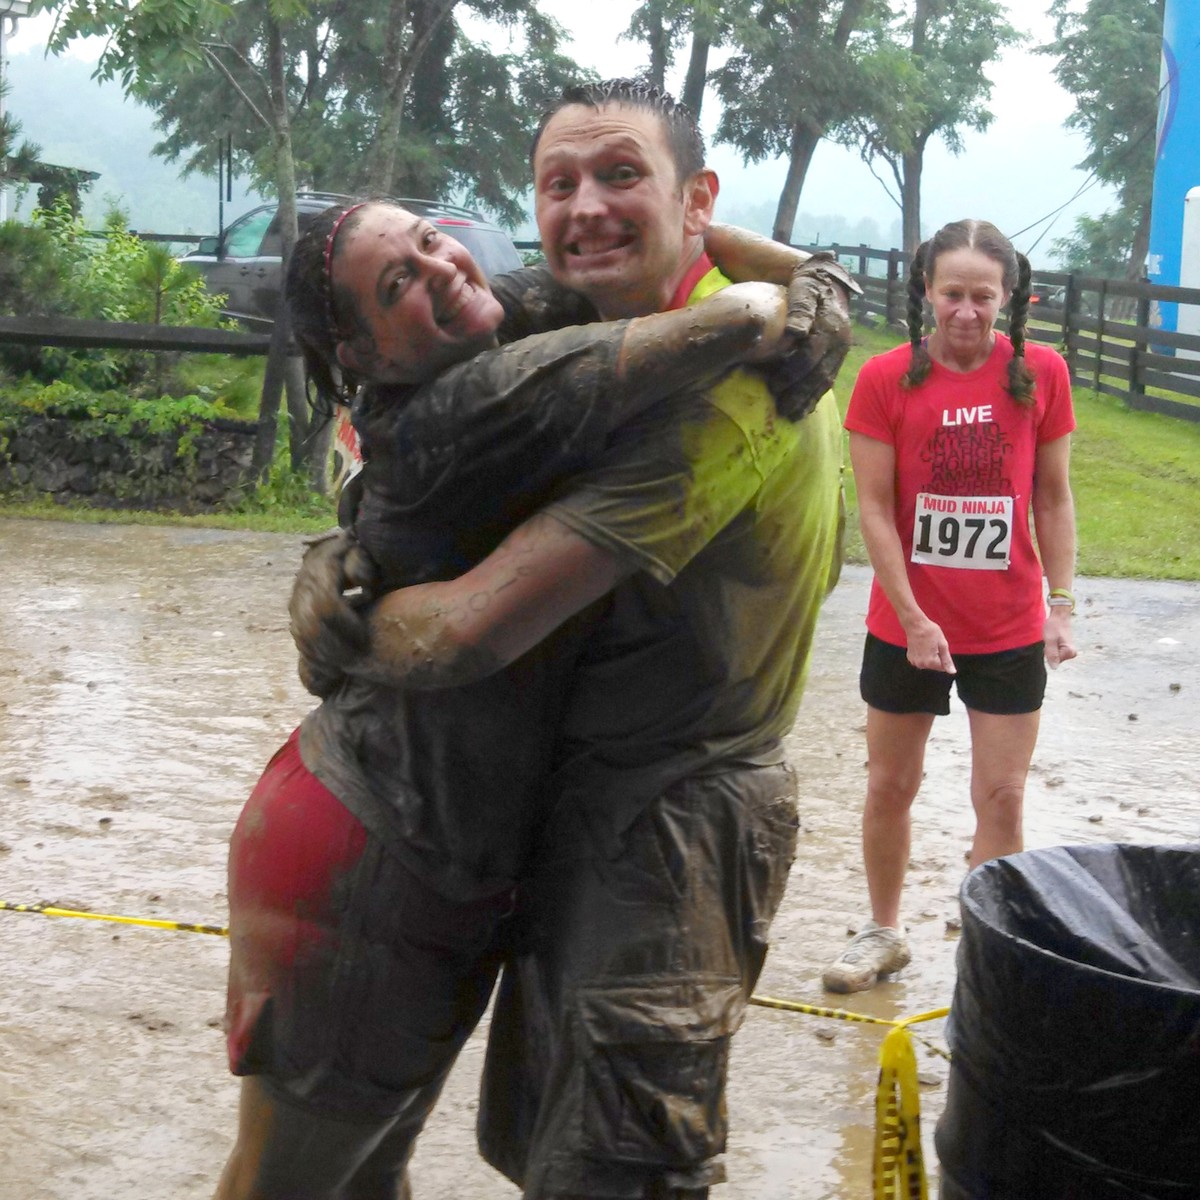 The happy, muddy couple. This would be a heck of a venue for a wedding, come to think of it!